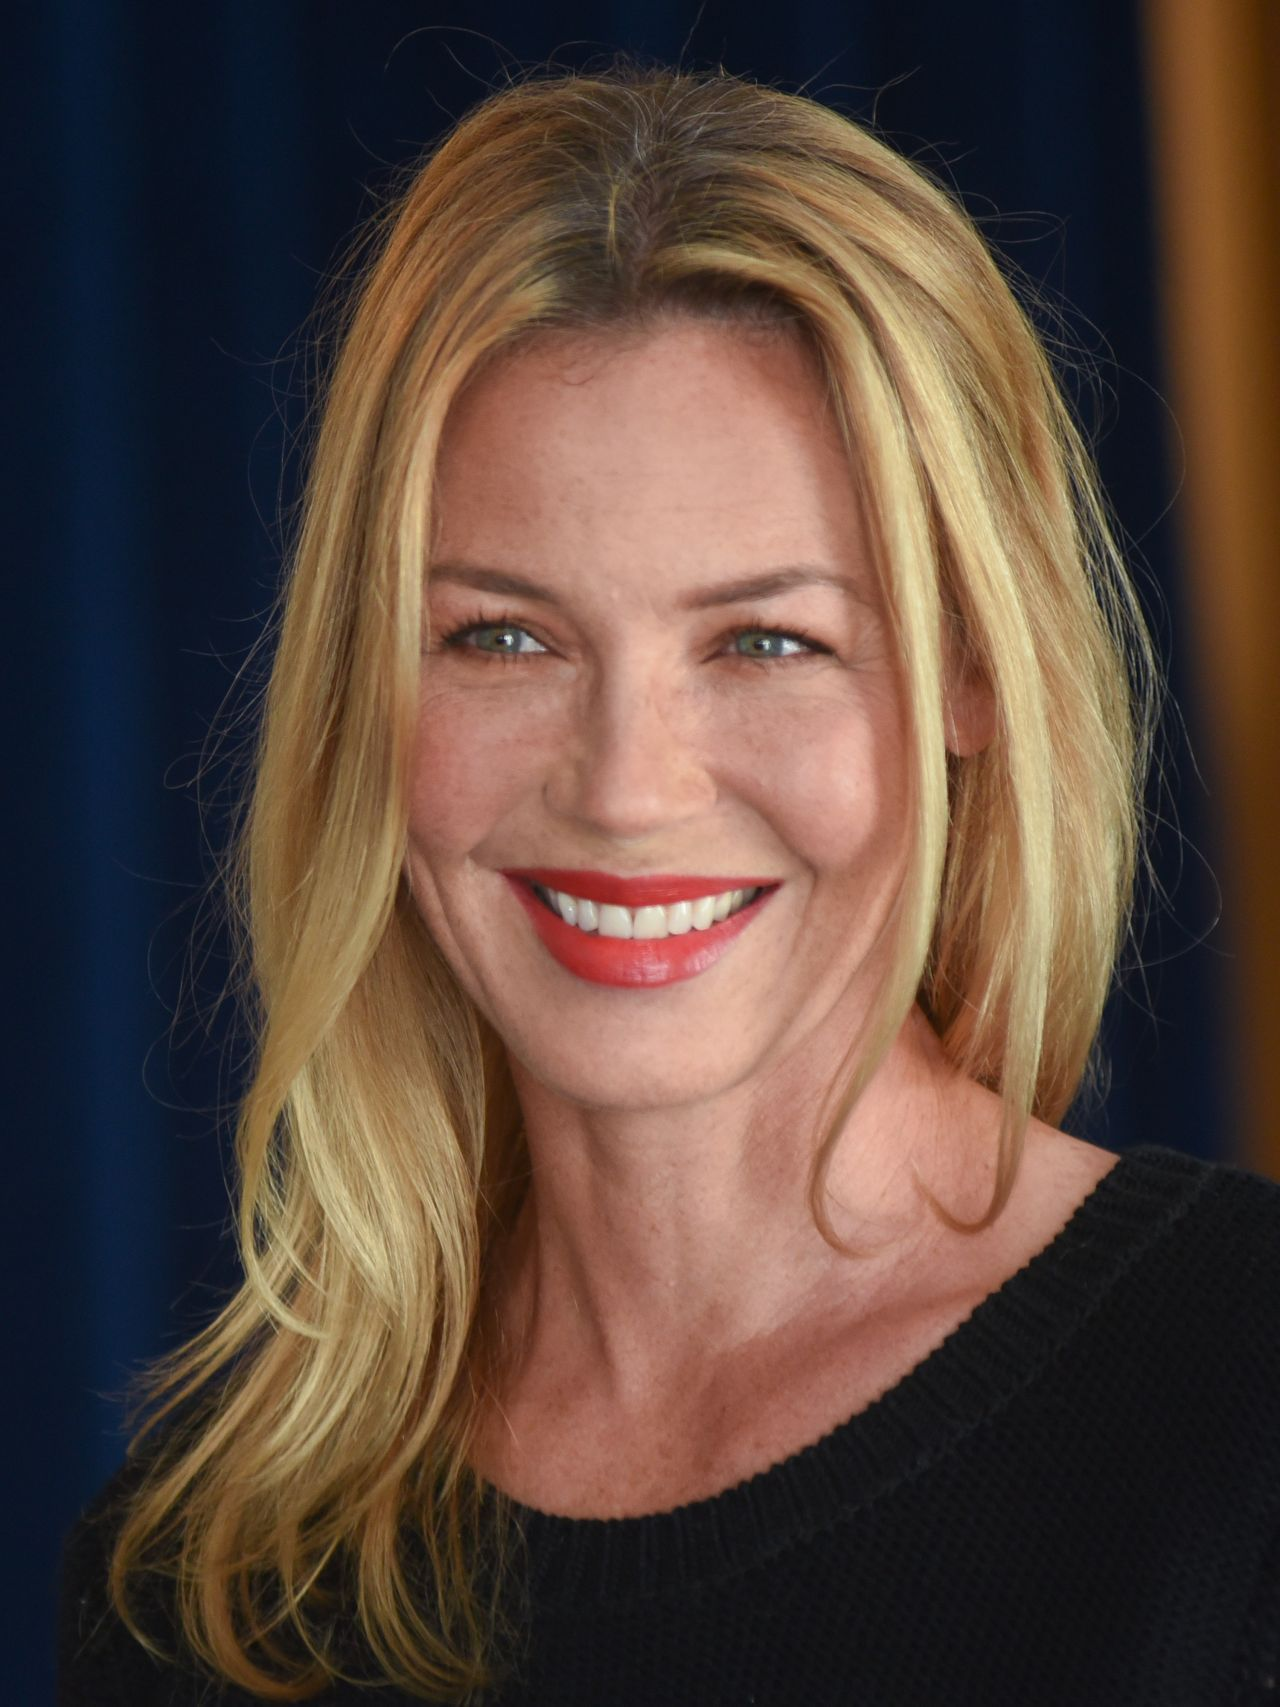 Celebrites Connie Nielsen naked (47 photo), Pussy, Cleavage, Instagram, braless 2006